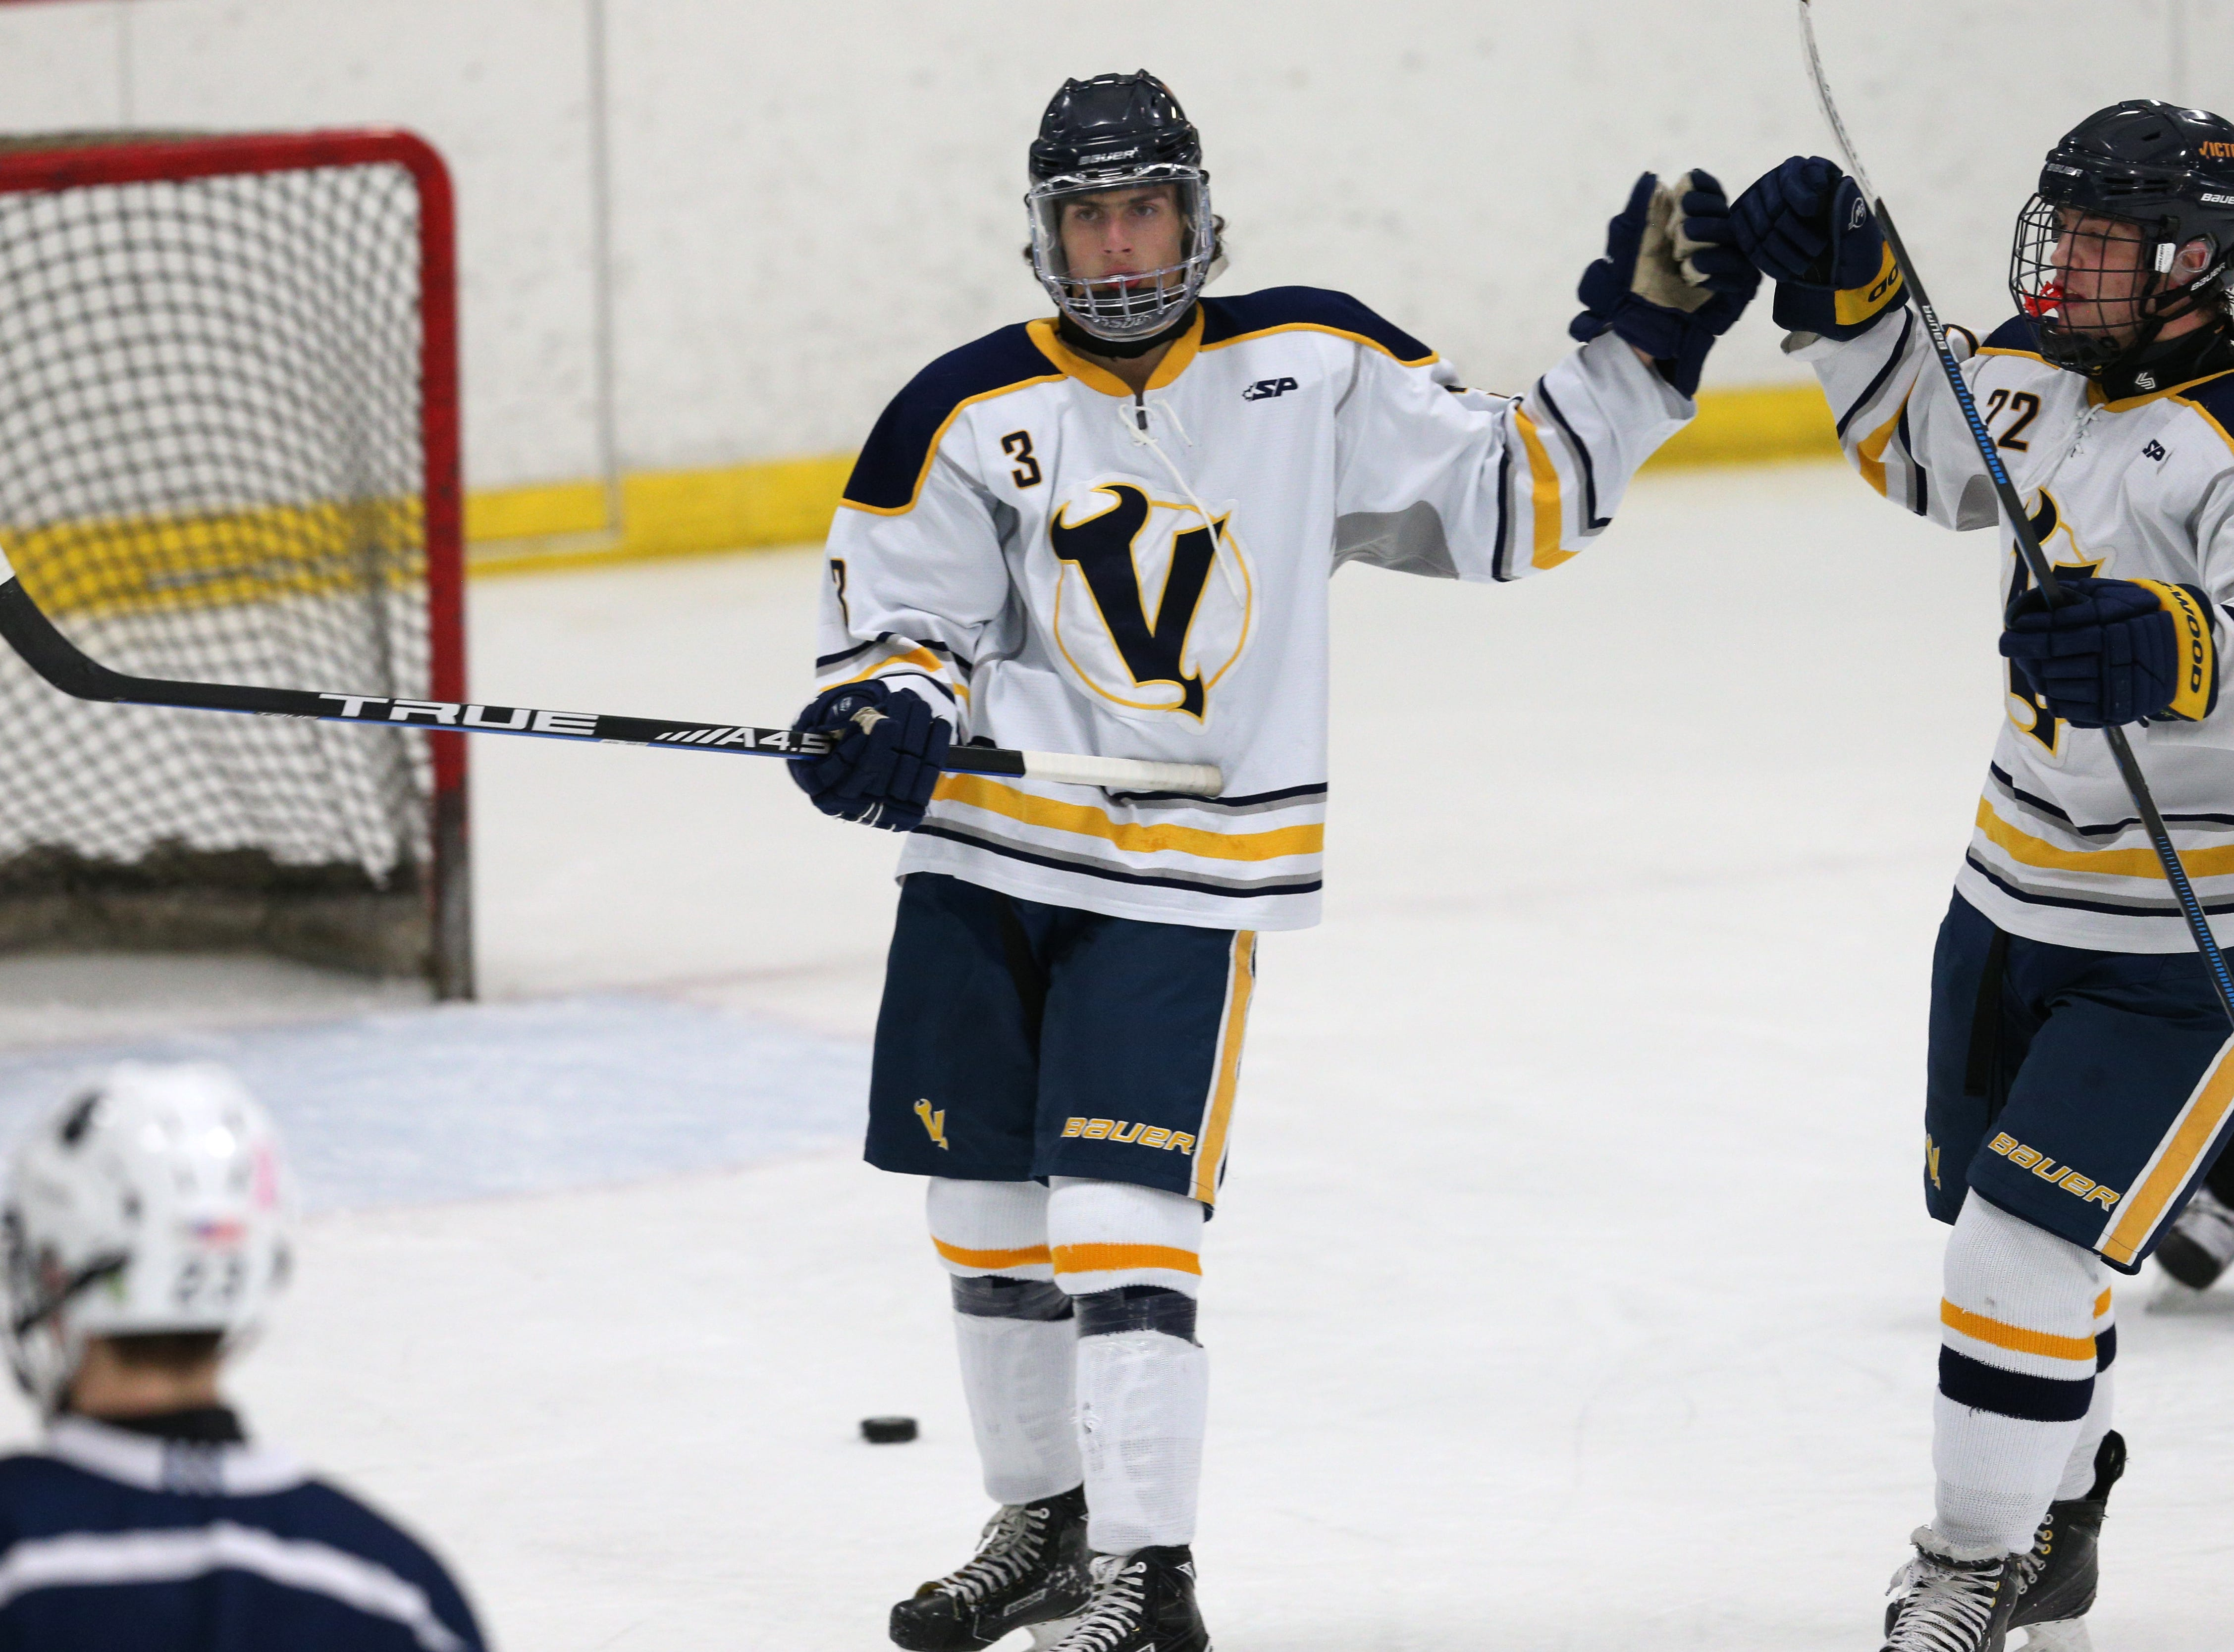 Victor #3 Jack Peterson celebrates his open net goal against Pittsford.